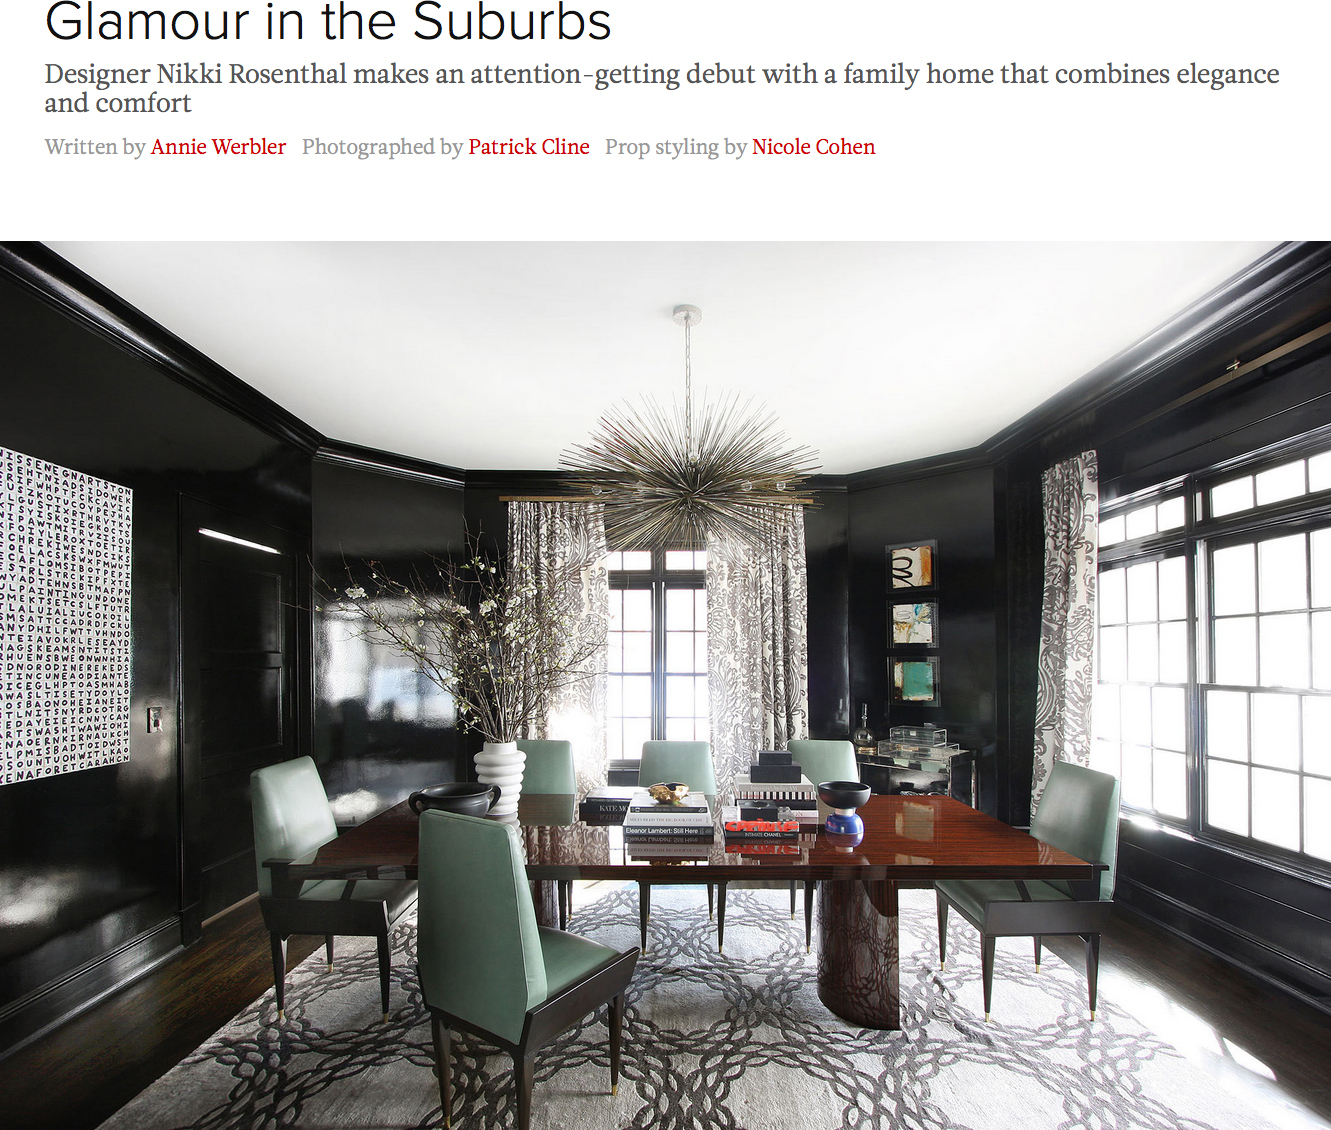 Glamour in the Suburbs